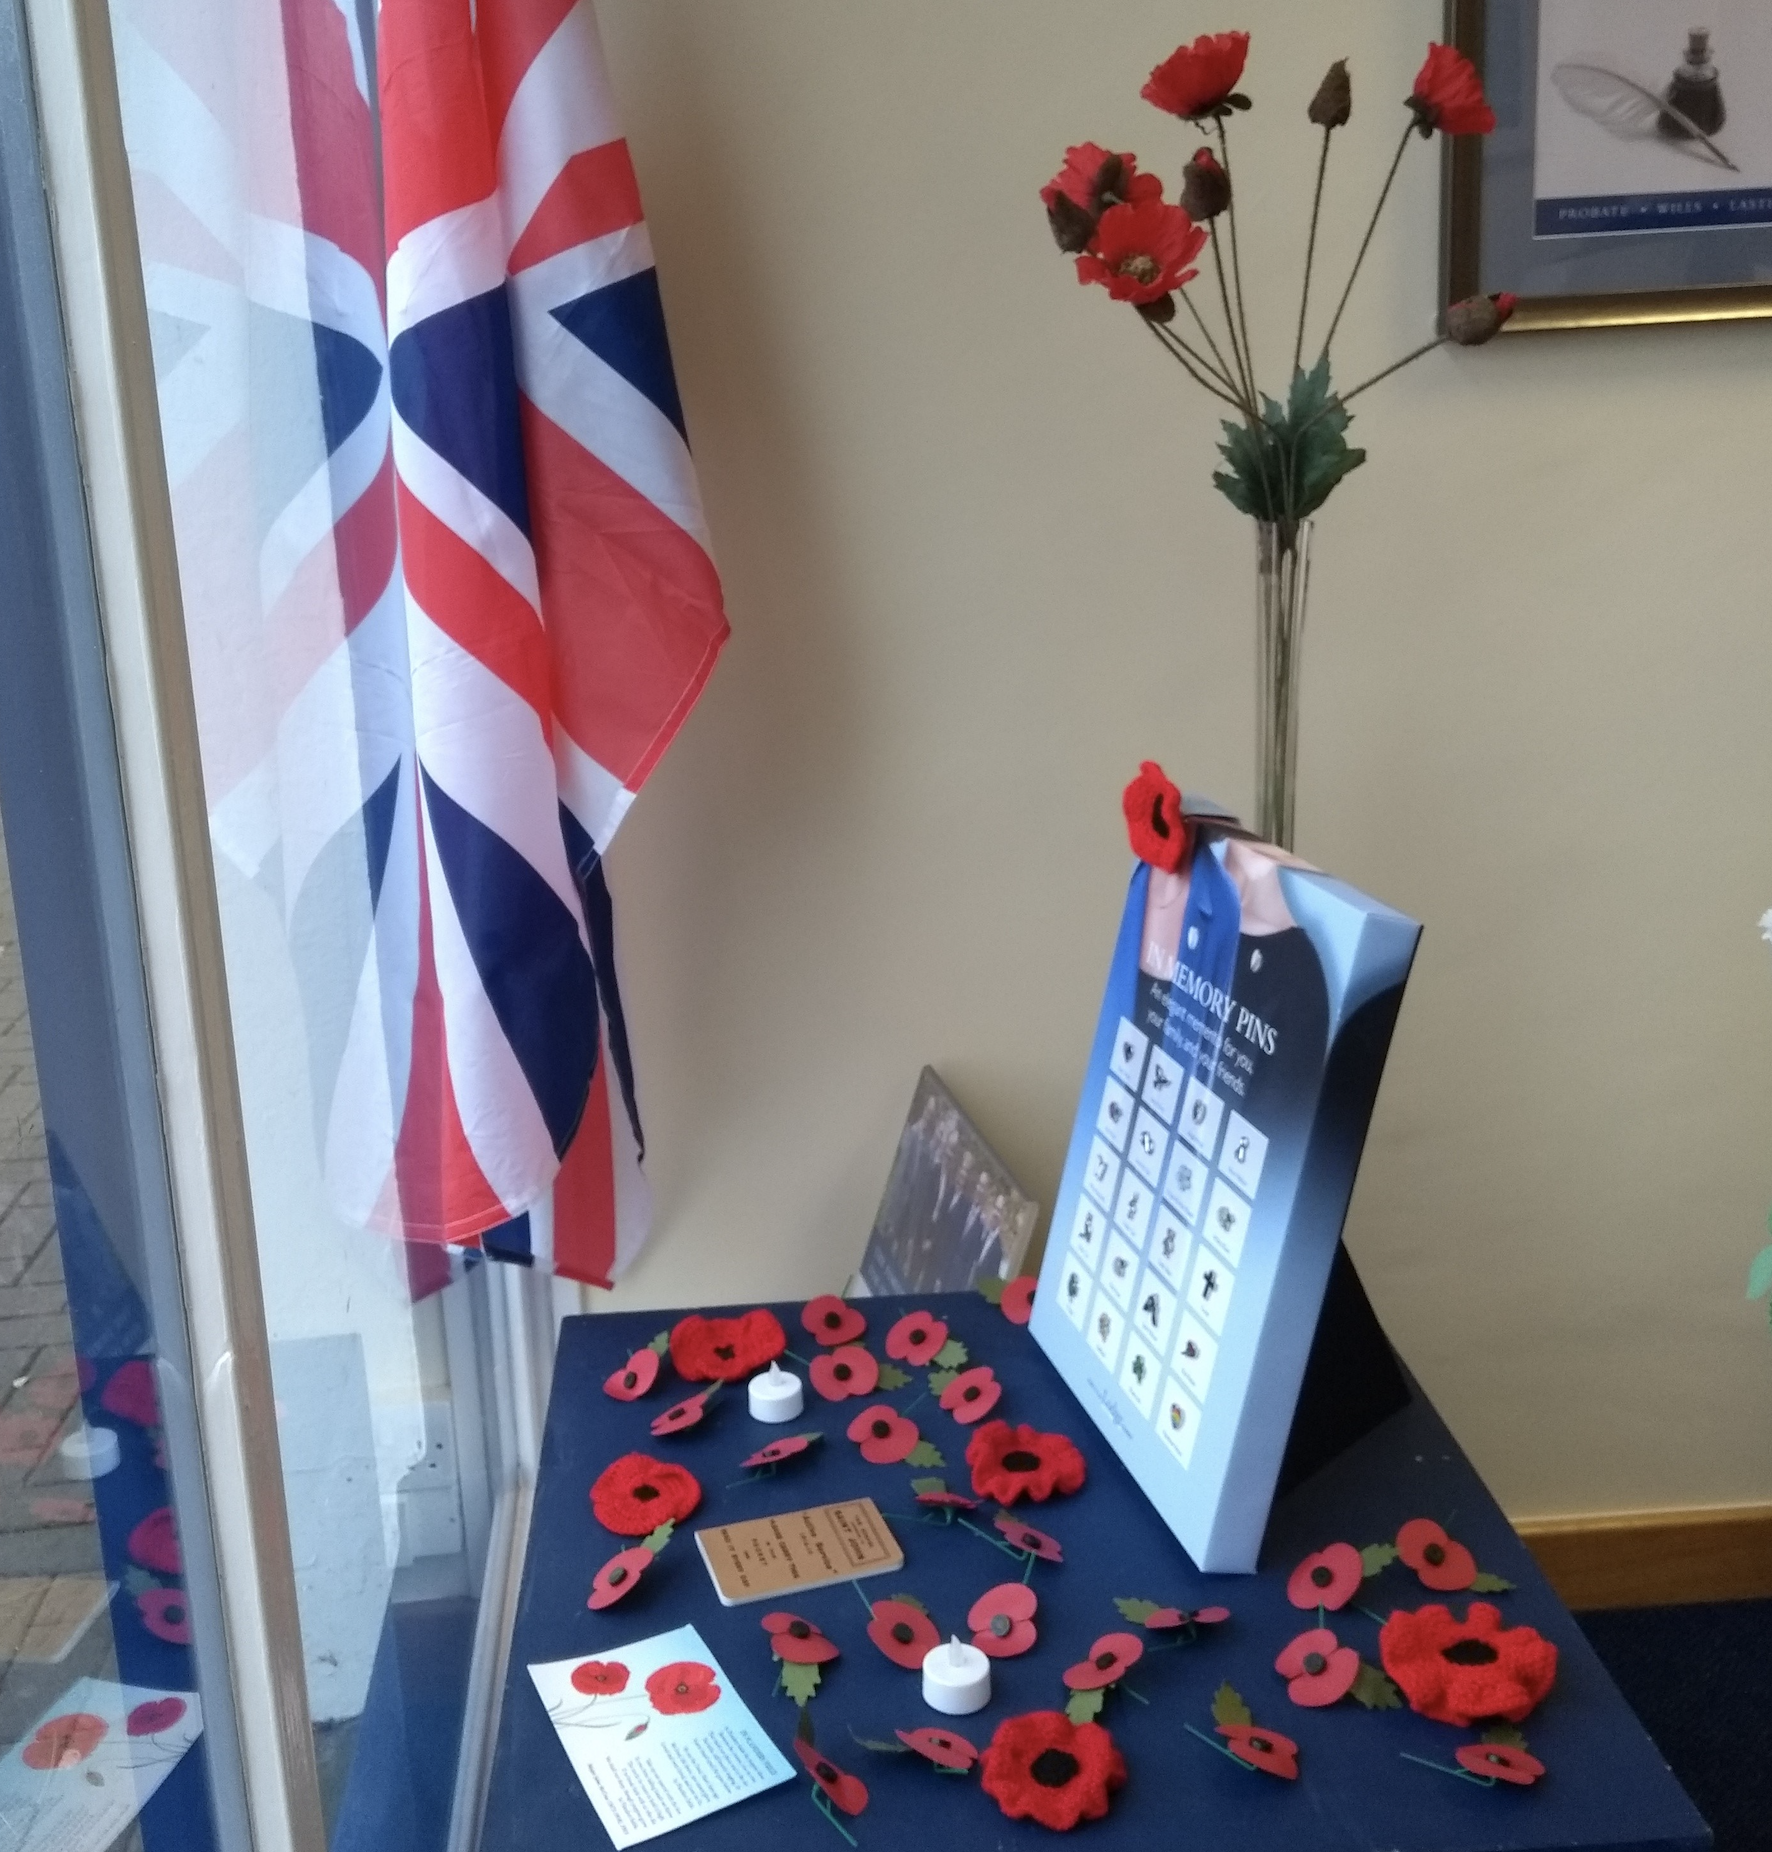 Knitted Poppies at Molesey Branch